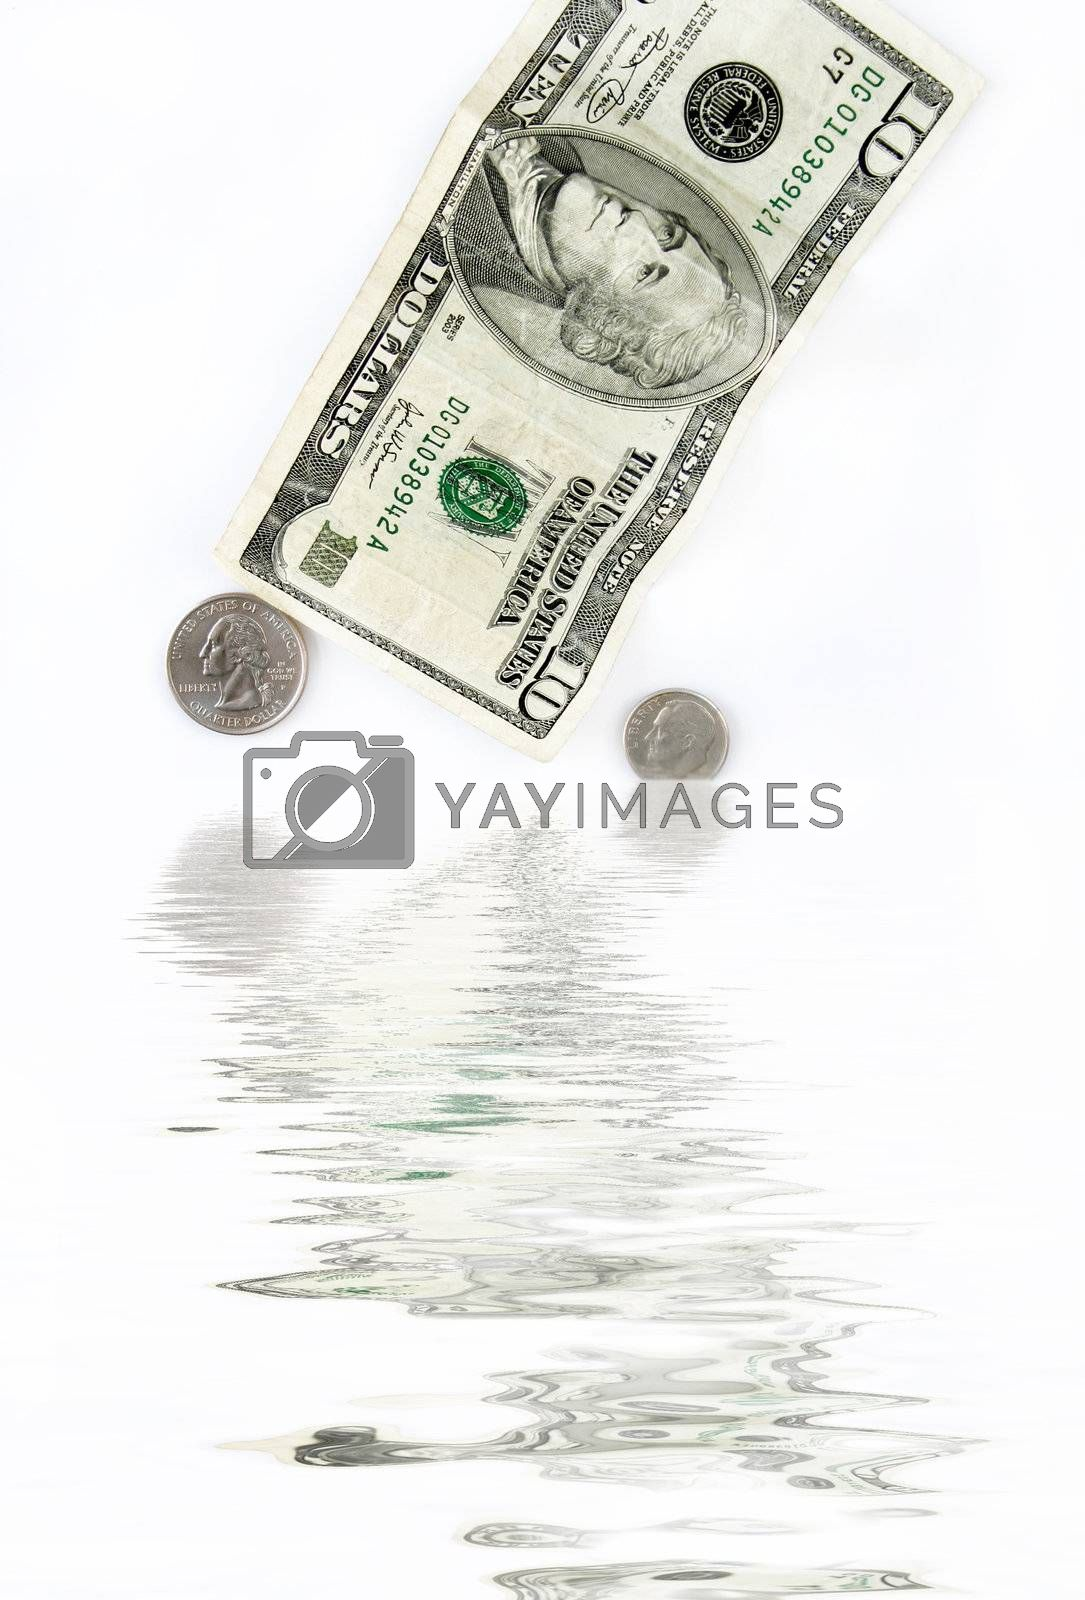 Ten dollar bill and loose change going into water.  Concept of a sinking economy.